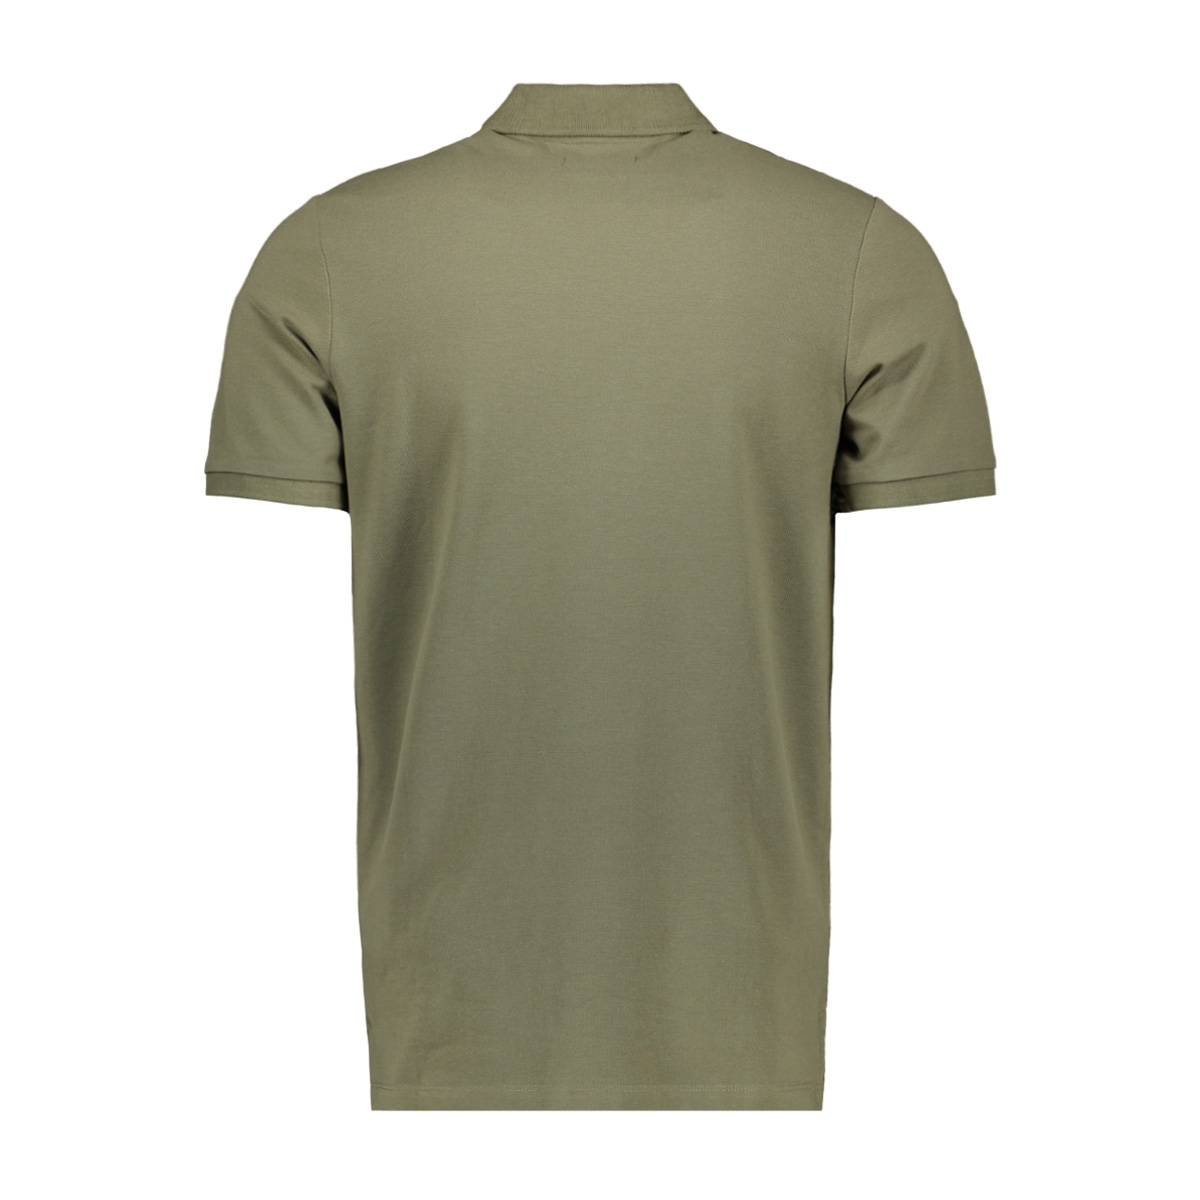 pktgms emb polo s/s 12139201 produkt polo dusty olive